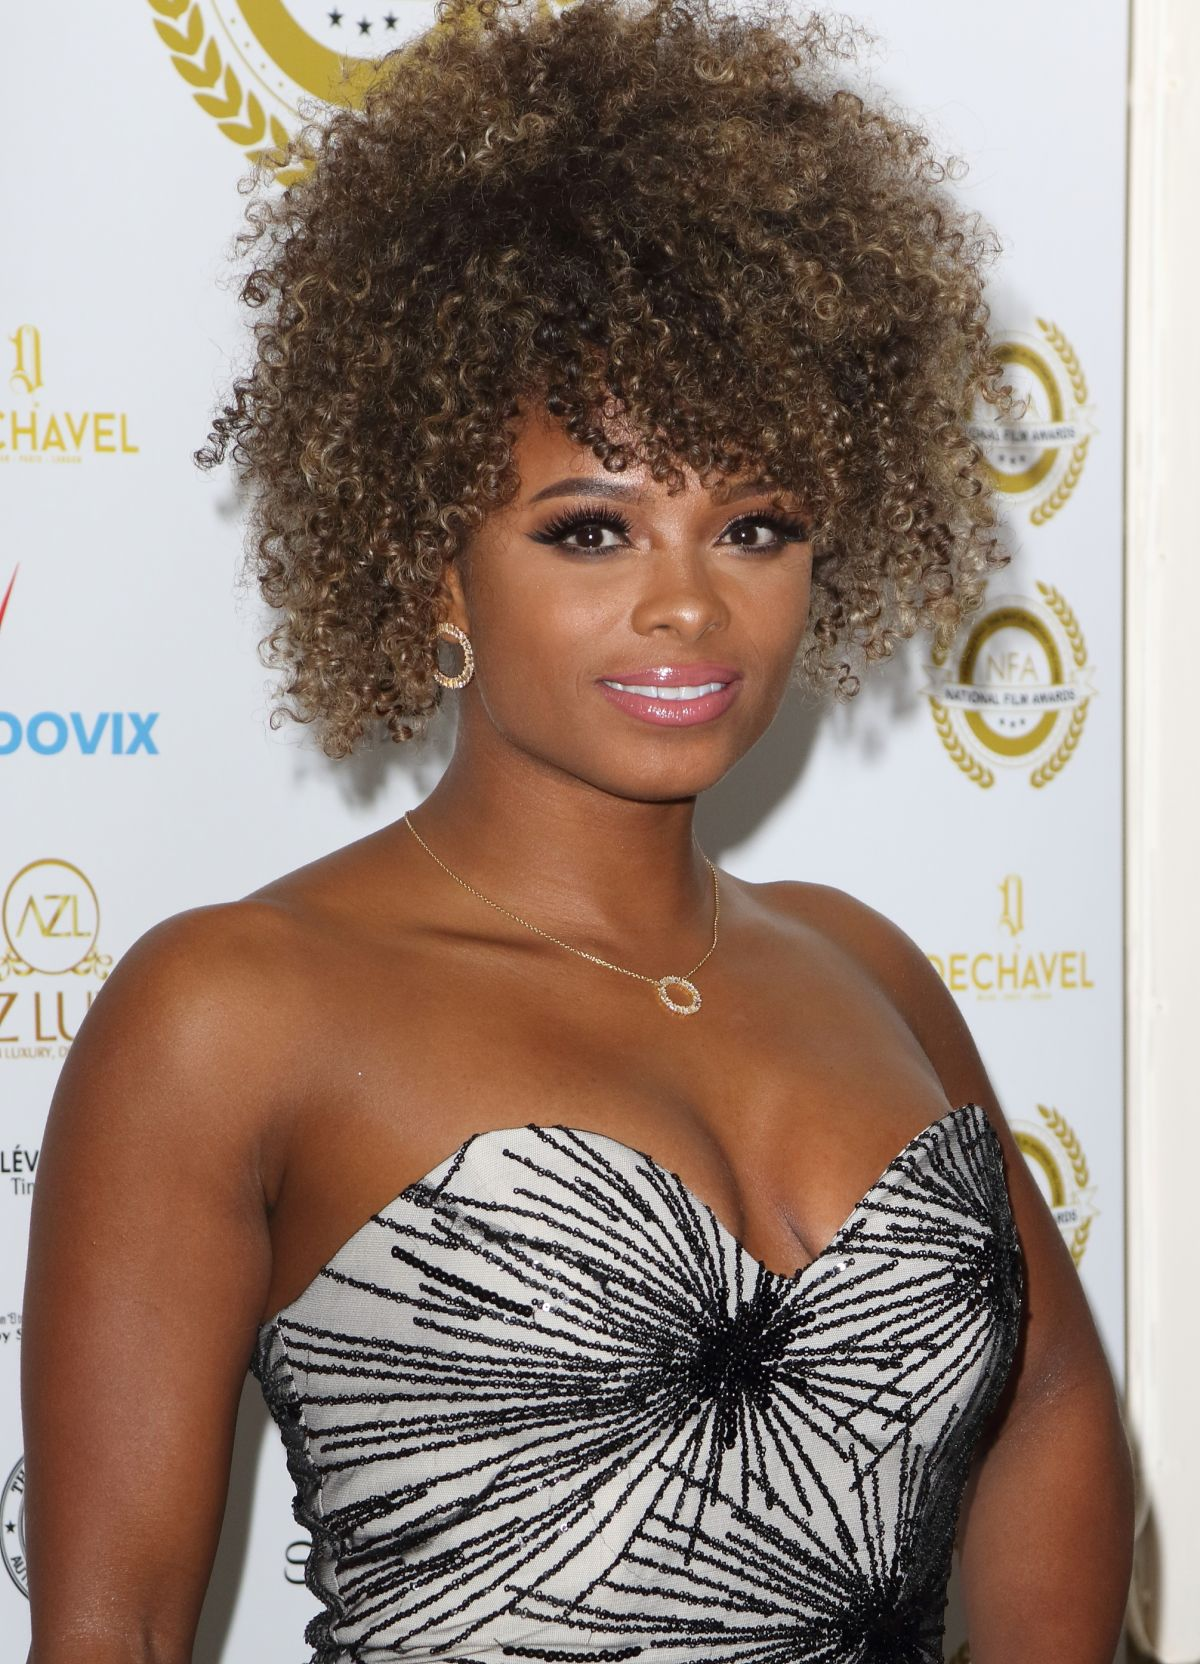 Pictures Fleur East nude (94 foto and video), Ass, Sideboobs, Boobs, cleavage 2019